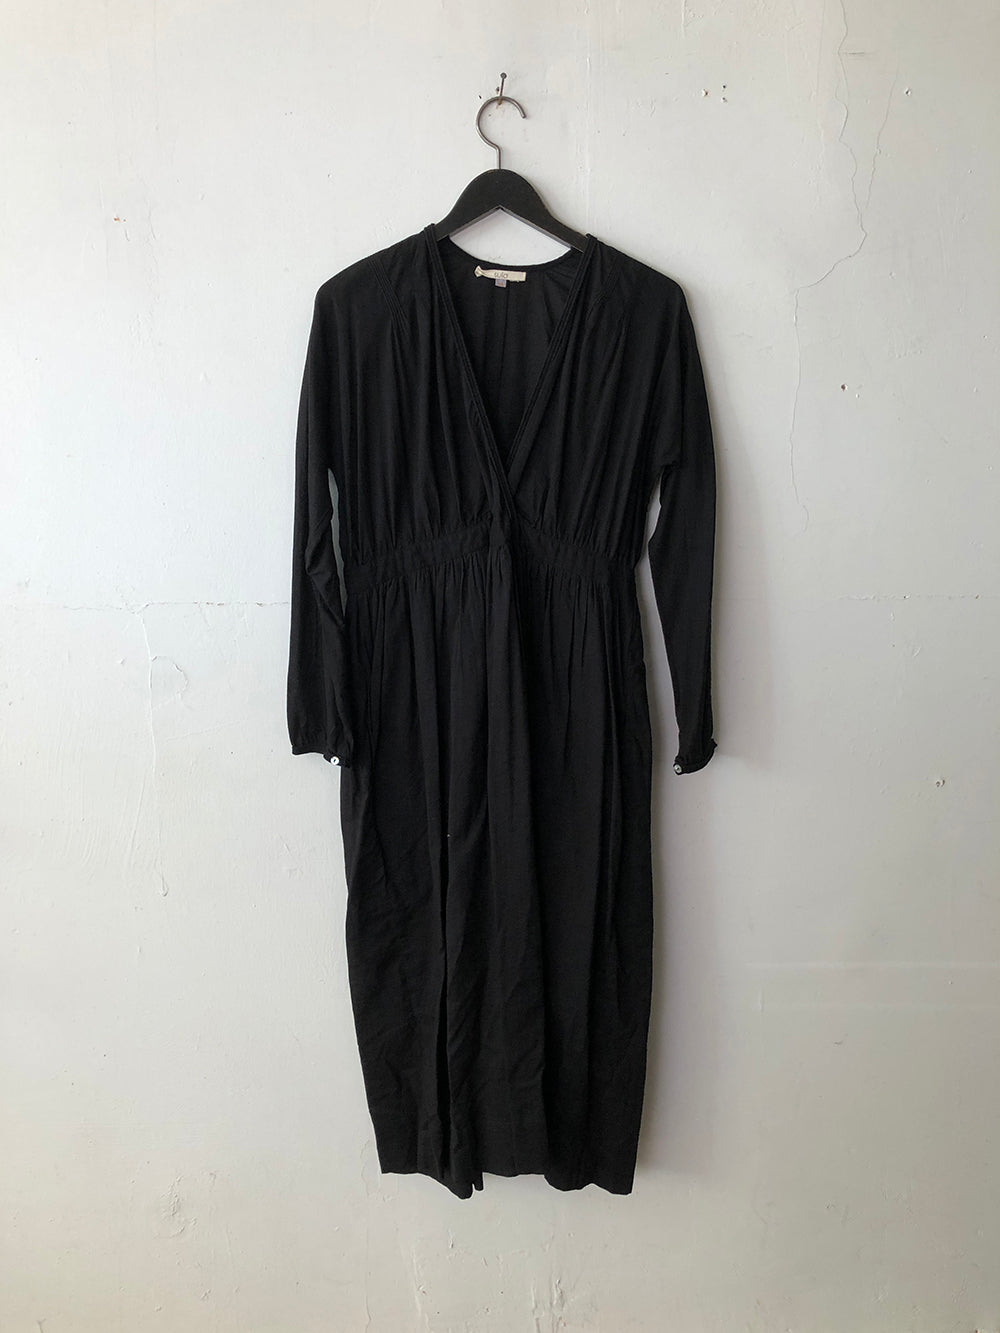 sula soot dress in licorice